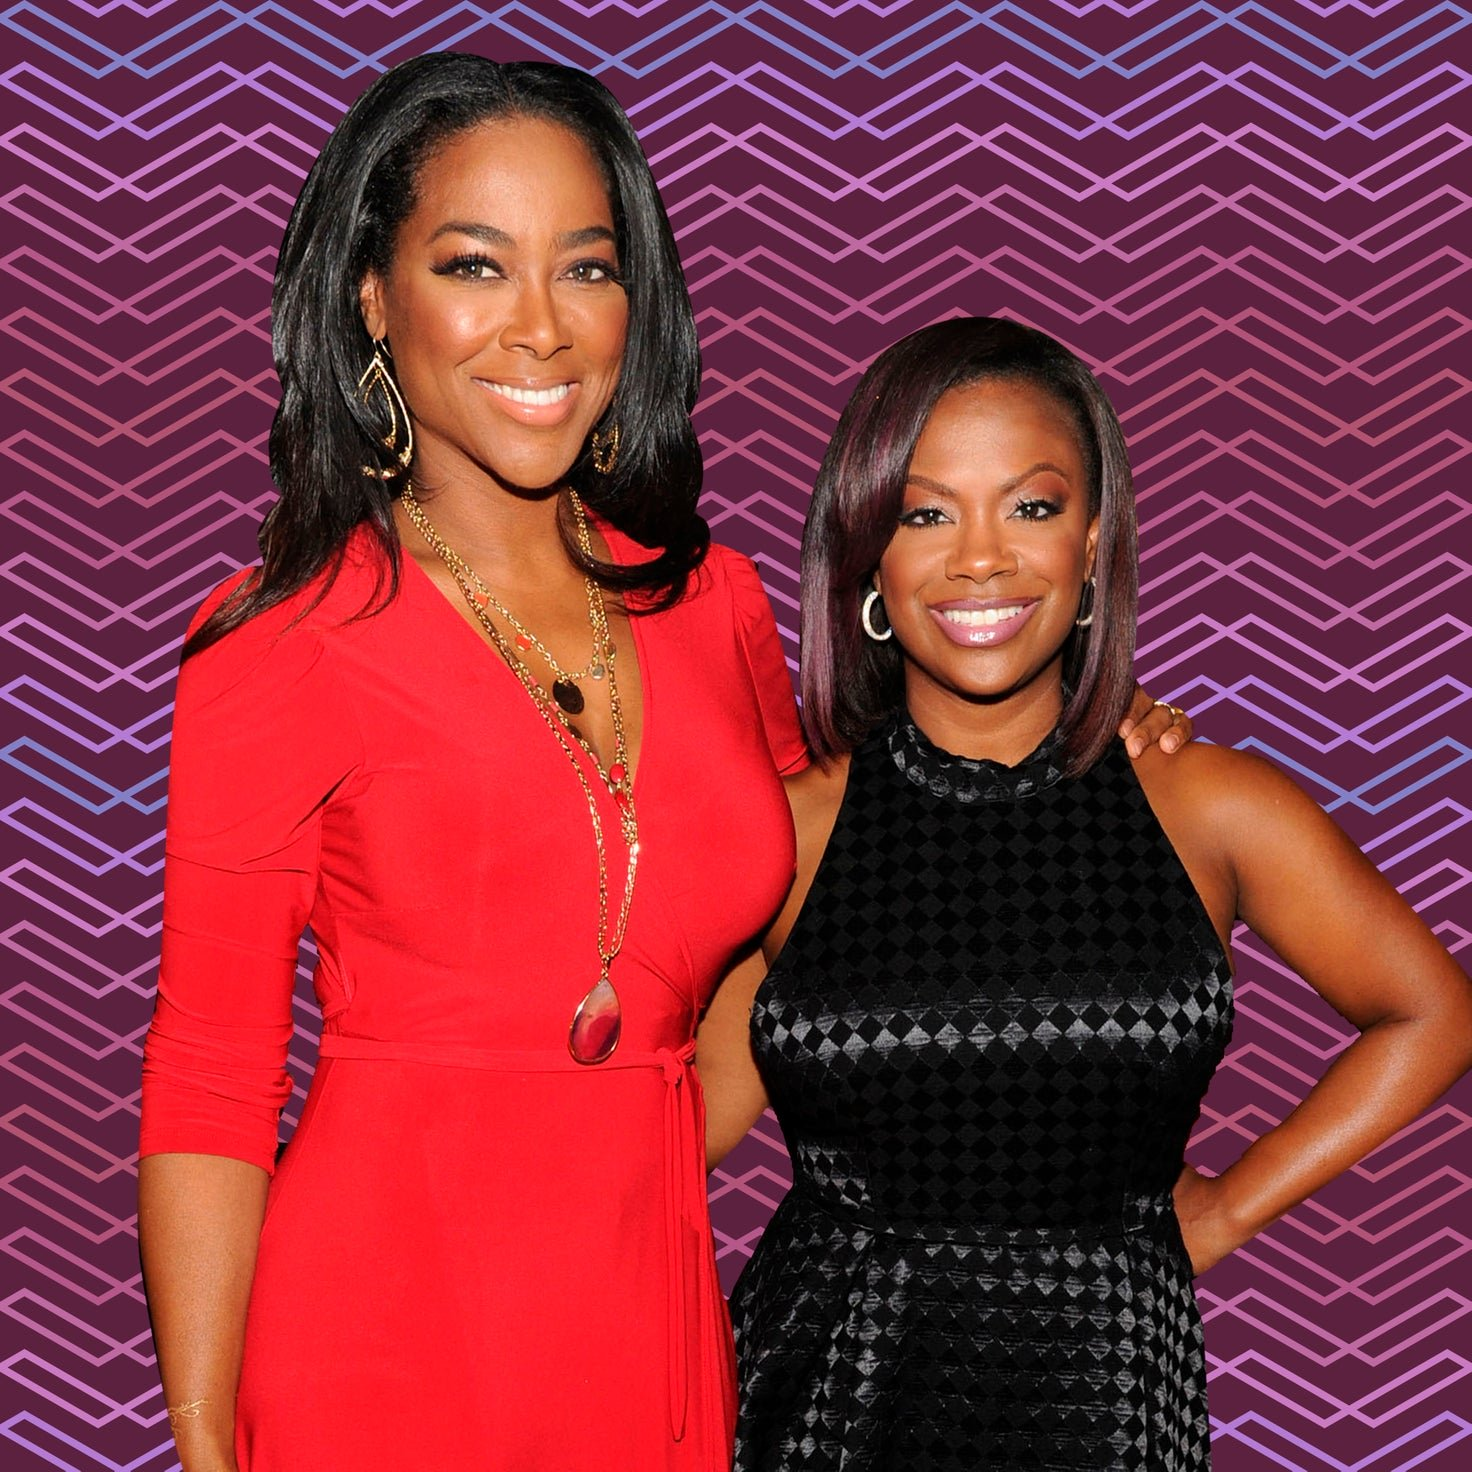 Kandi Burruss Hangs Out With Kenya Moore – Check Out The Gorgeous Ladies